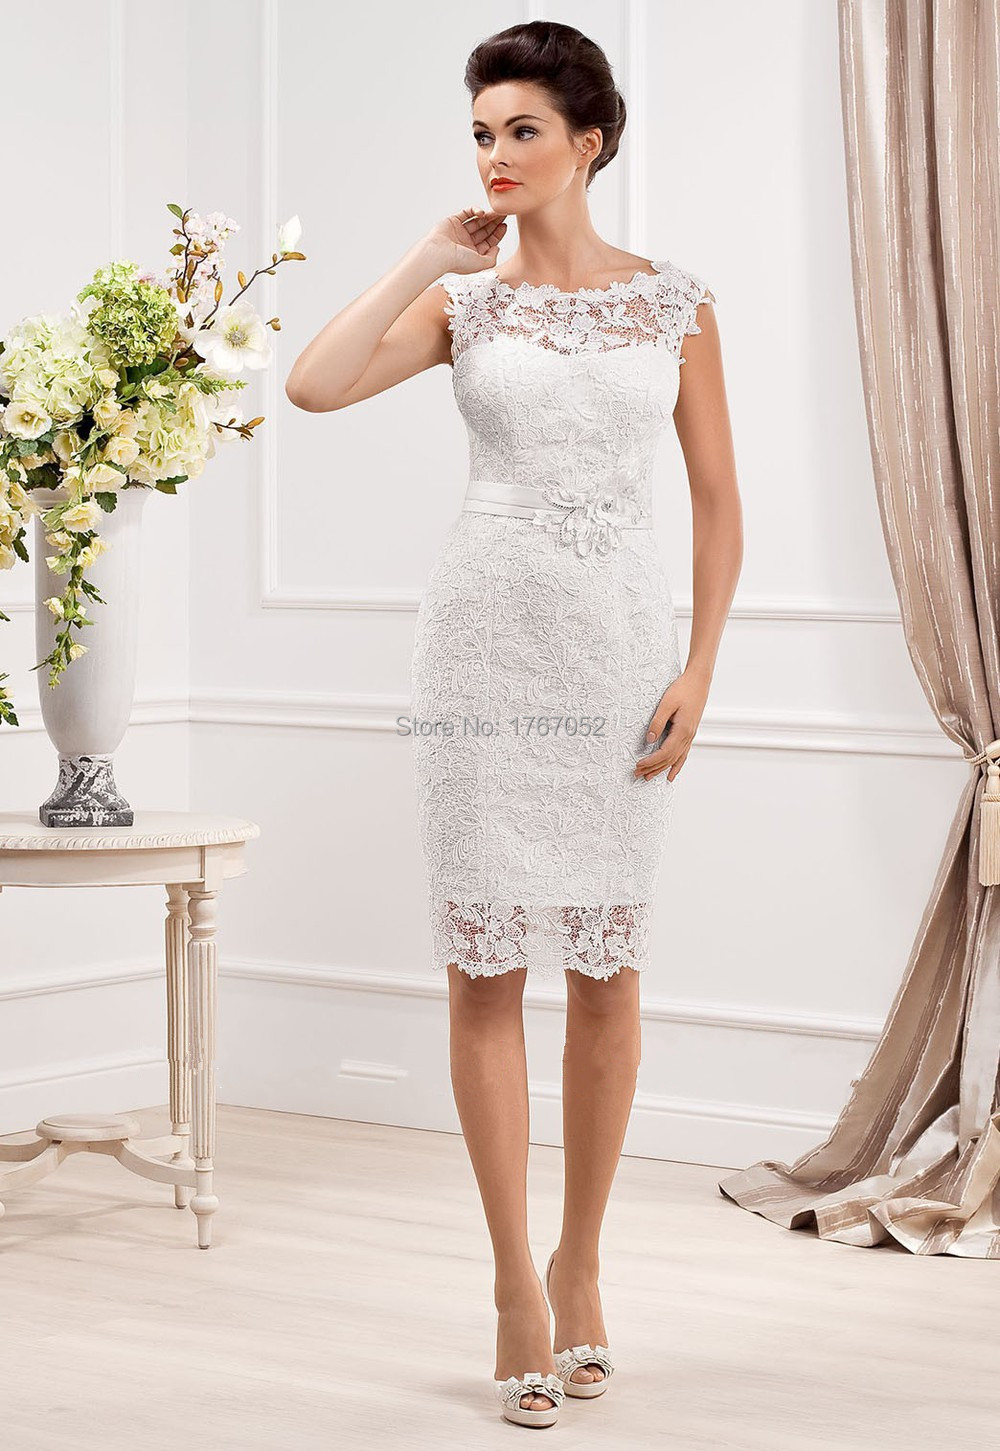 new designer elegant scoop neckline sheath lace short